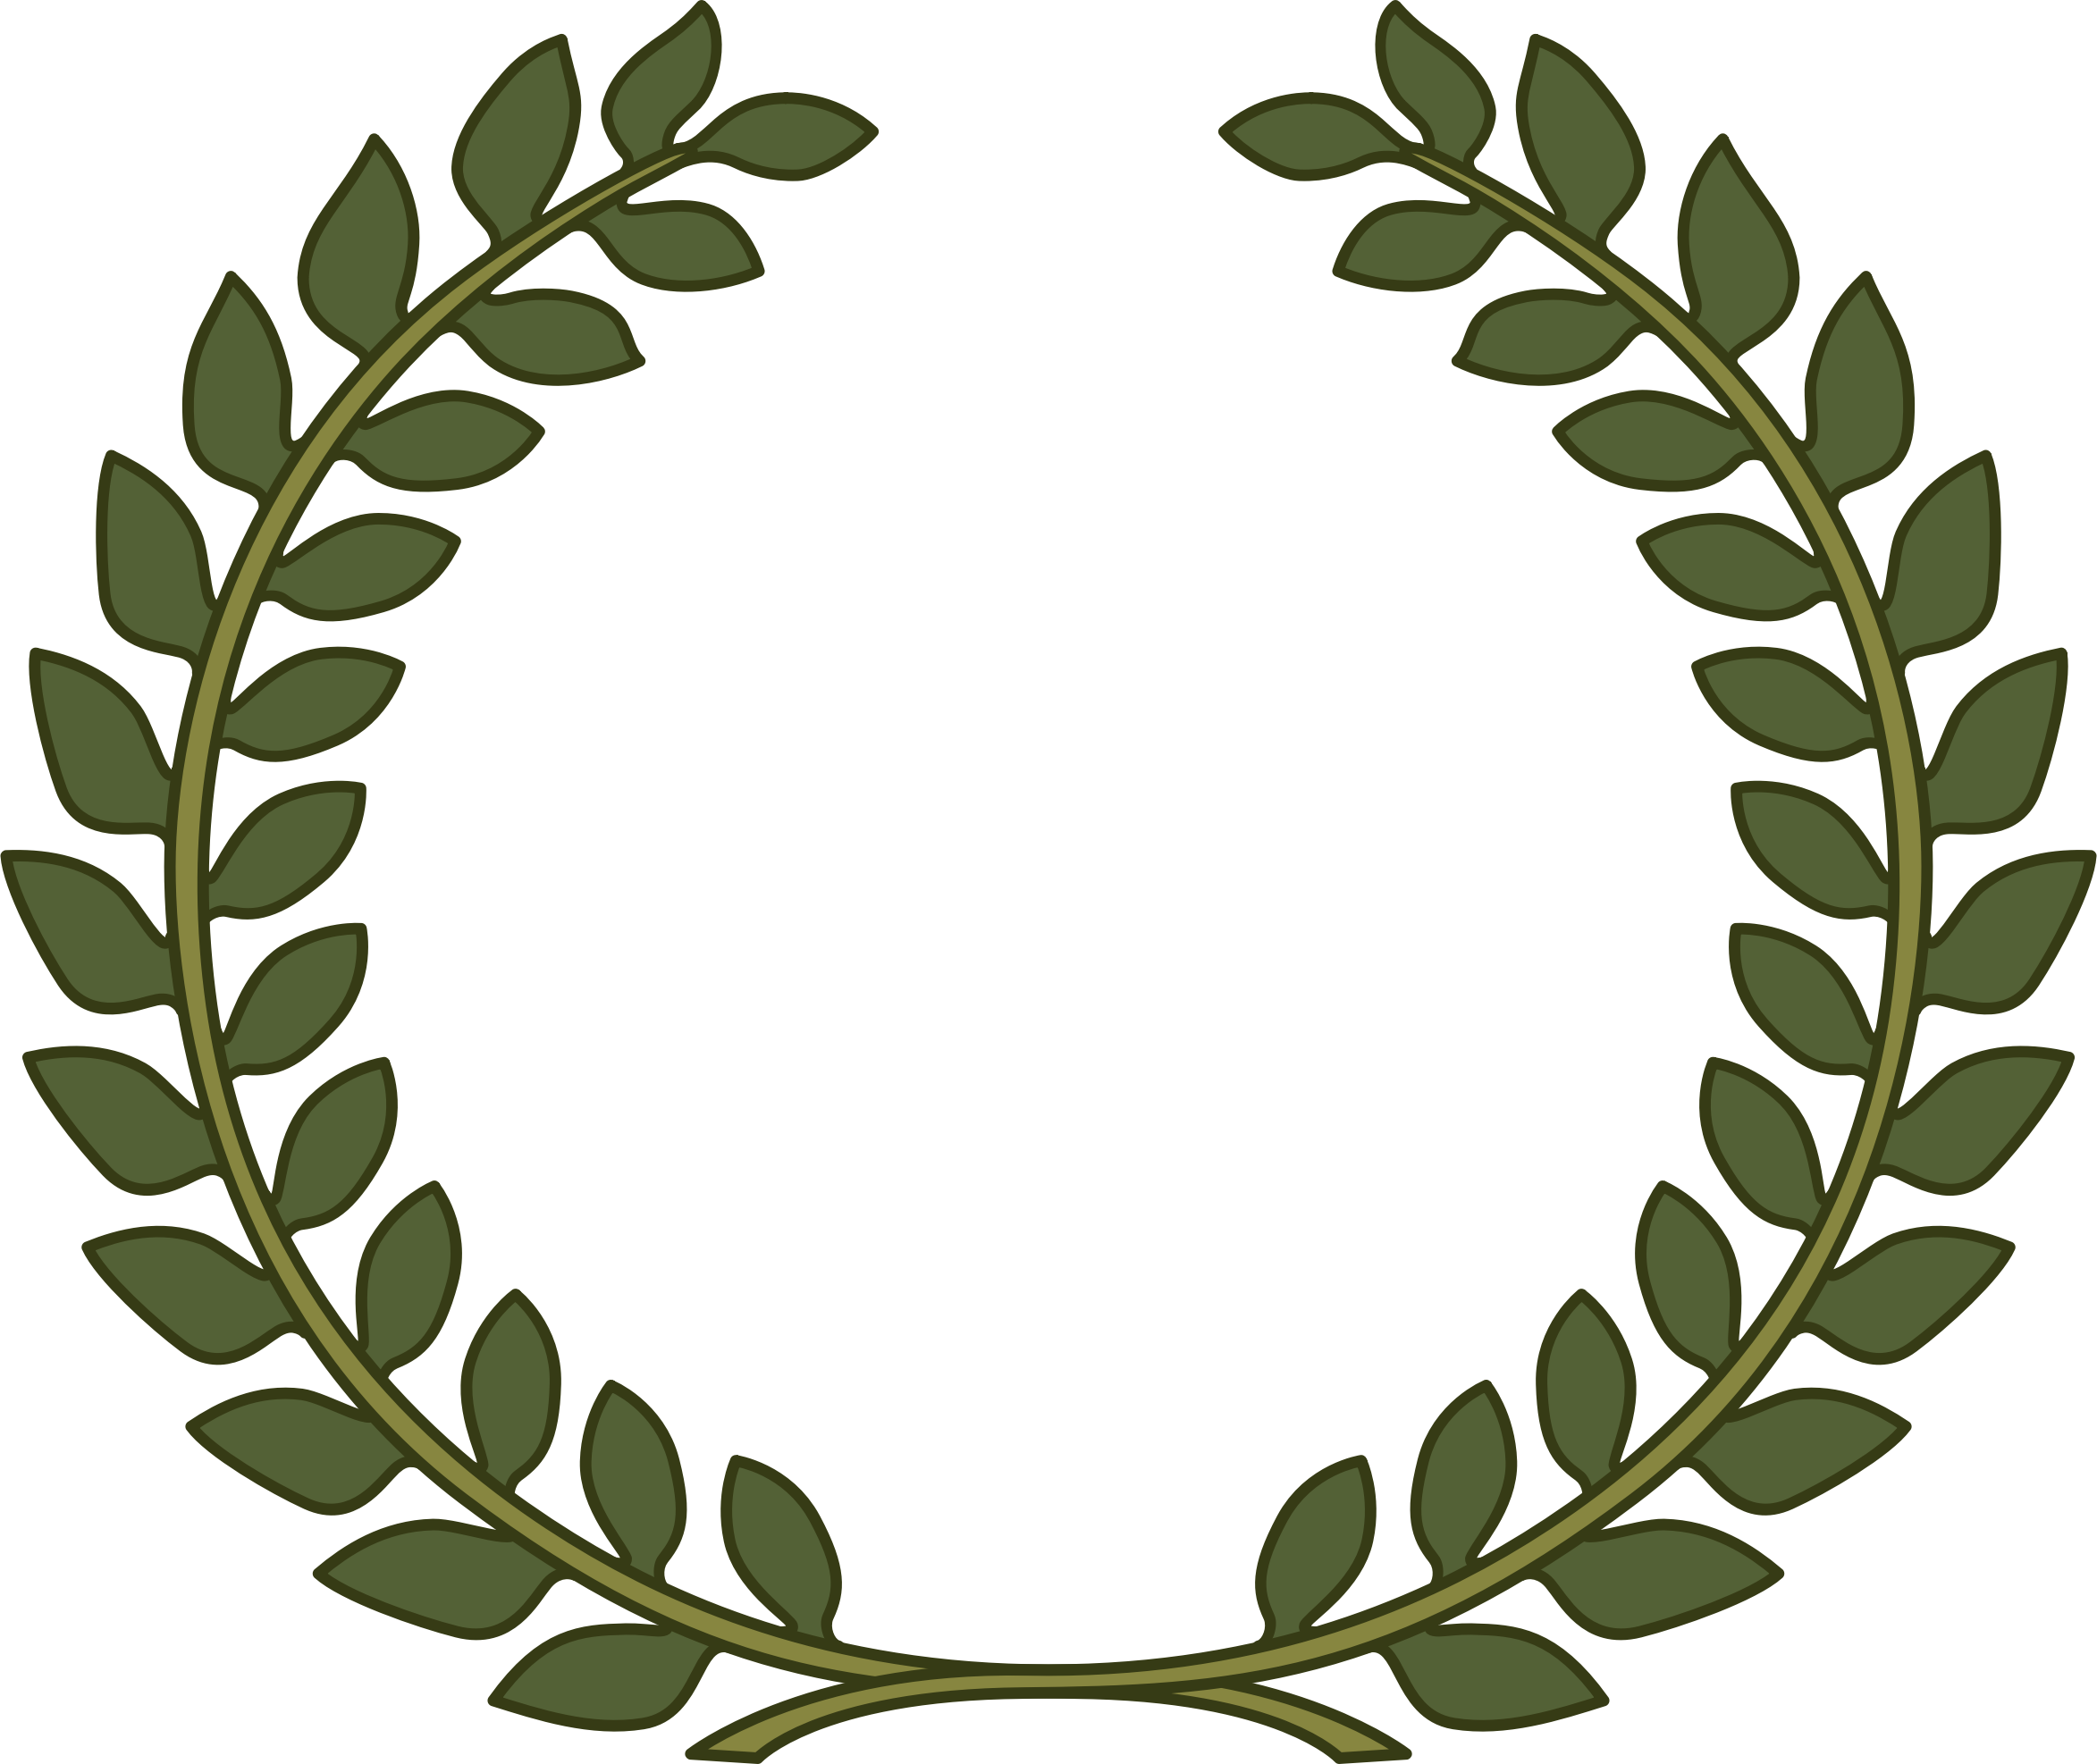 23 greek leaf png free cliparts that you can download to you computer ...